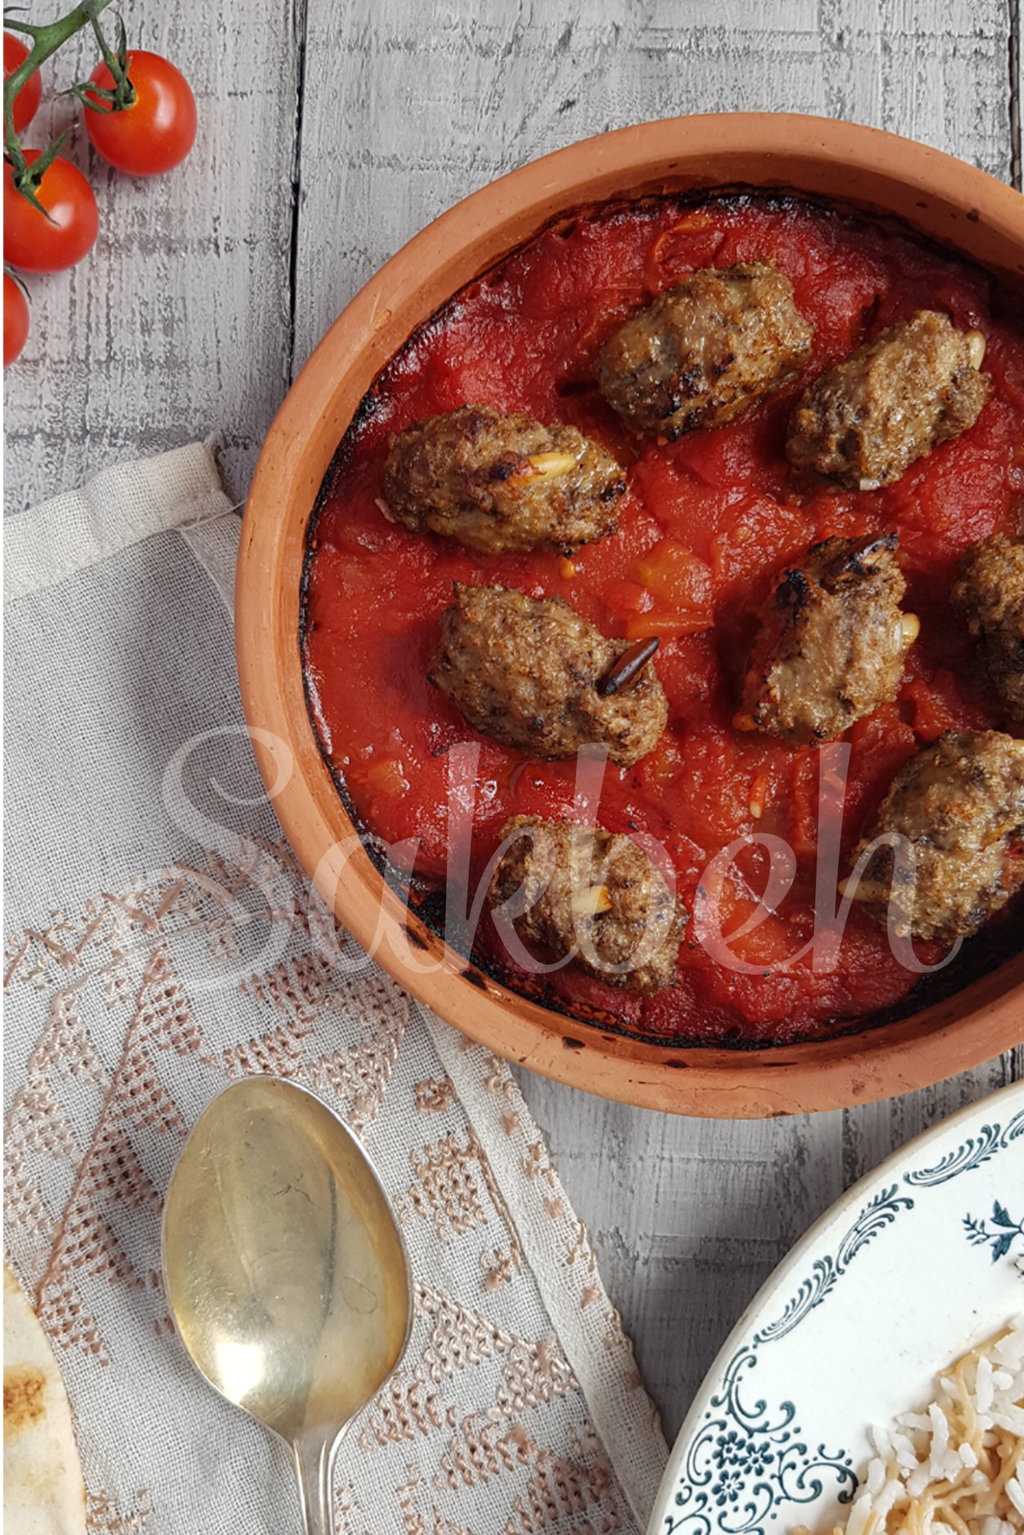 Kabab Hindi - Kabab meatballs in a tomato and onion stew